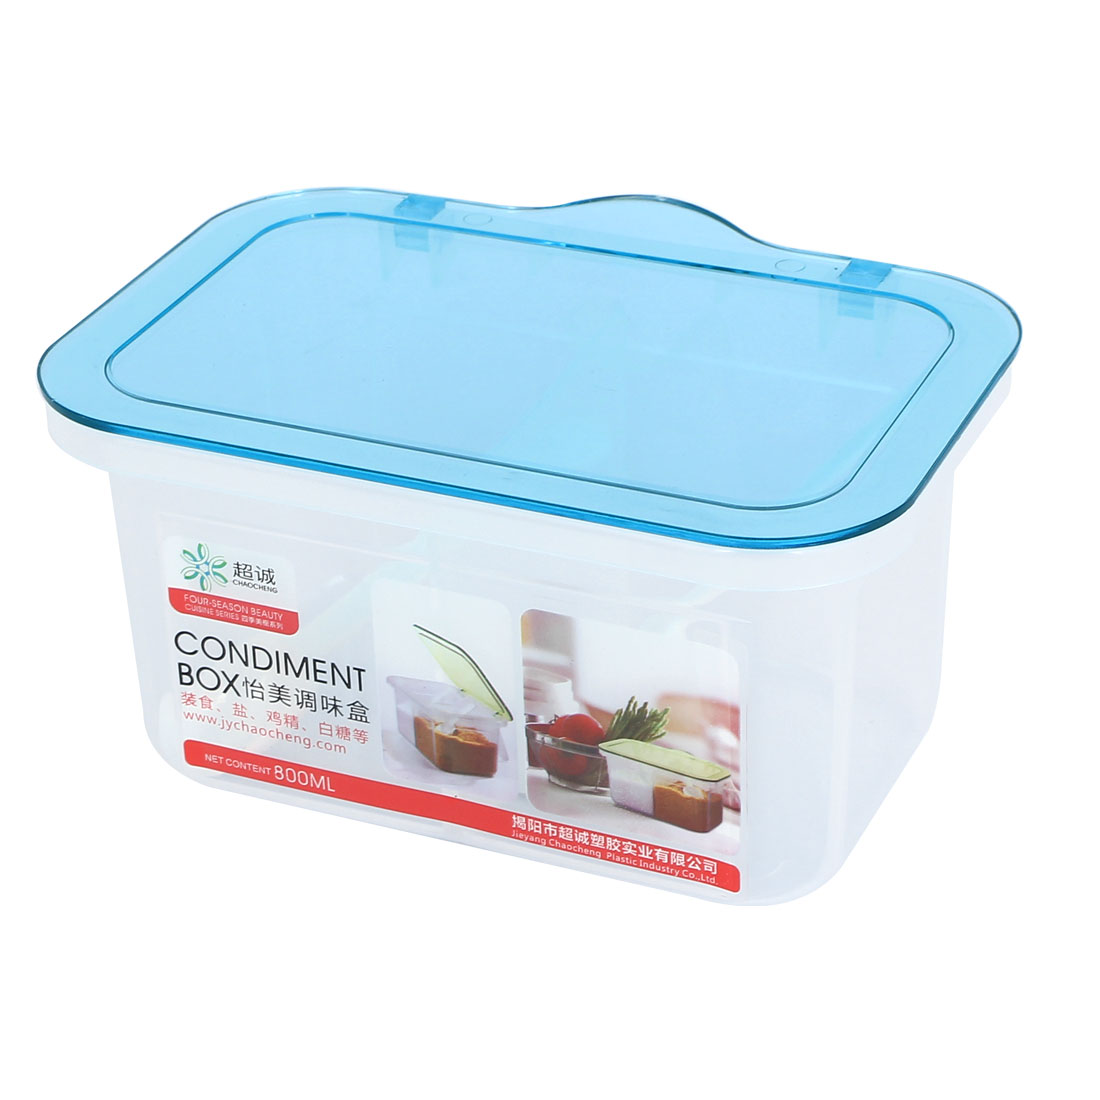 Kitchen Plastic 2 Compartments Condiment Container Holder Tray Box Clear Blue